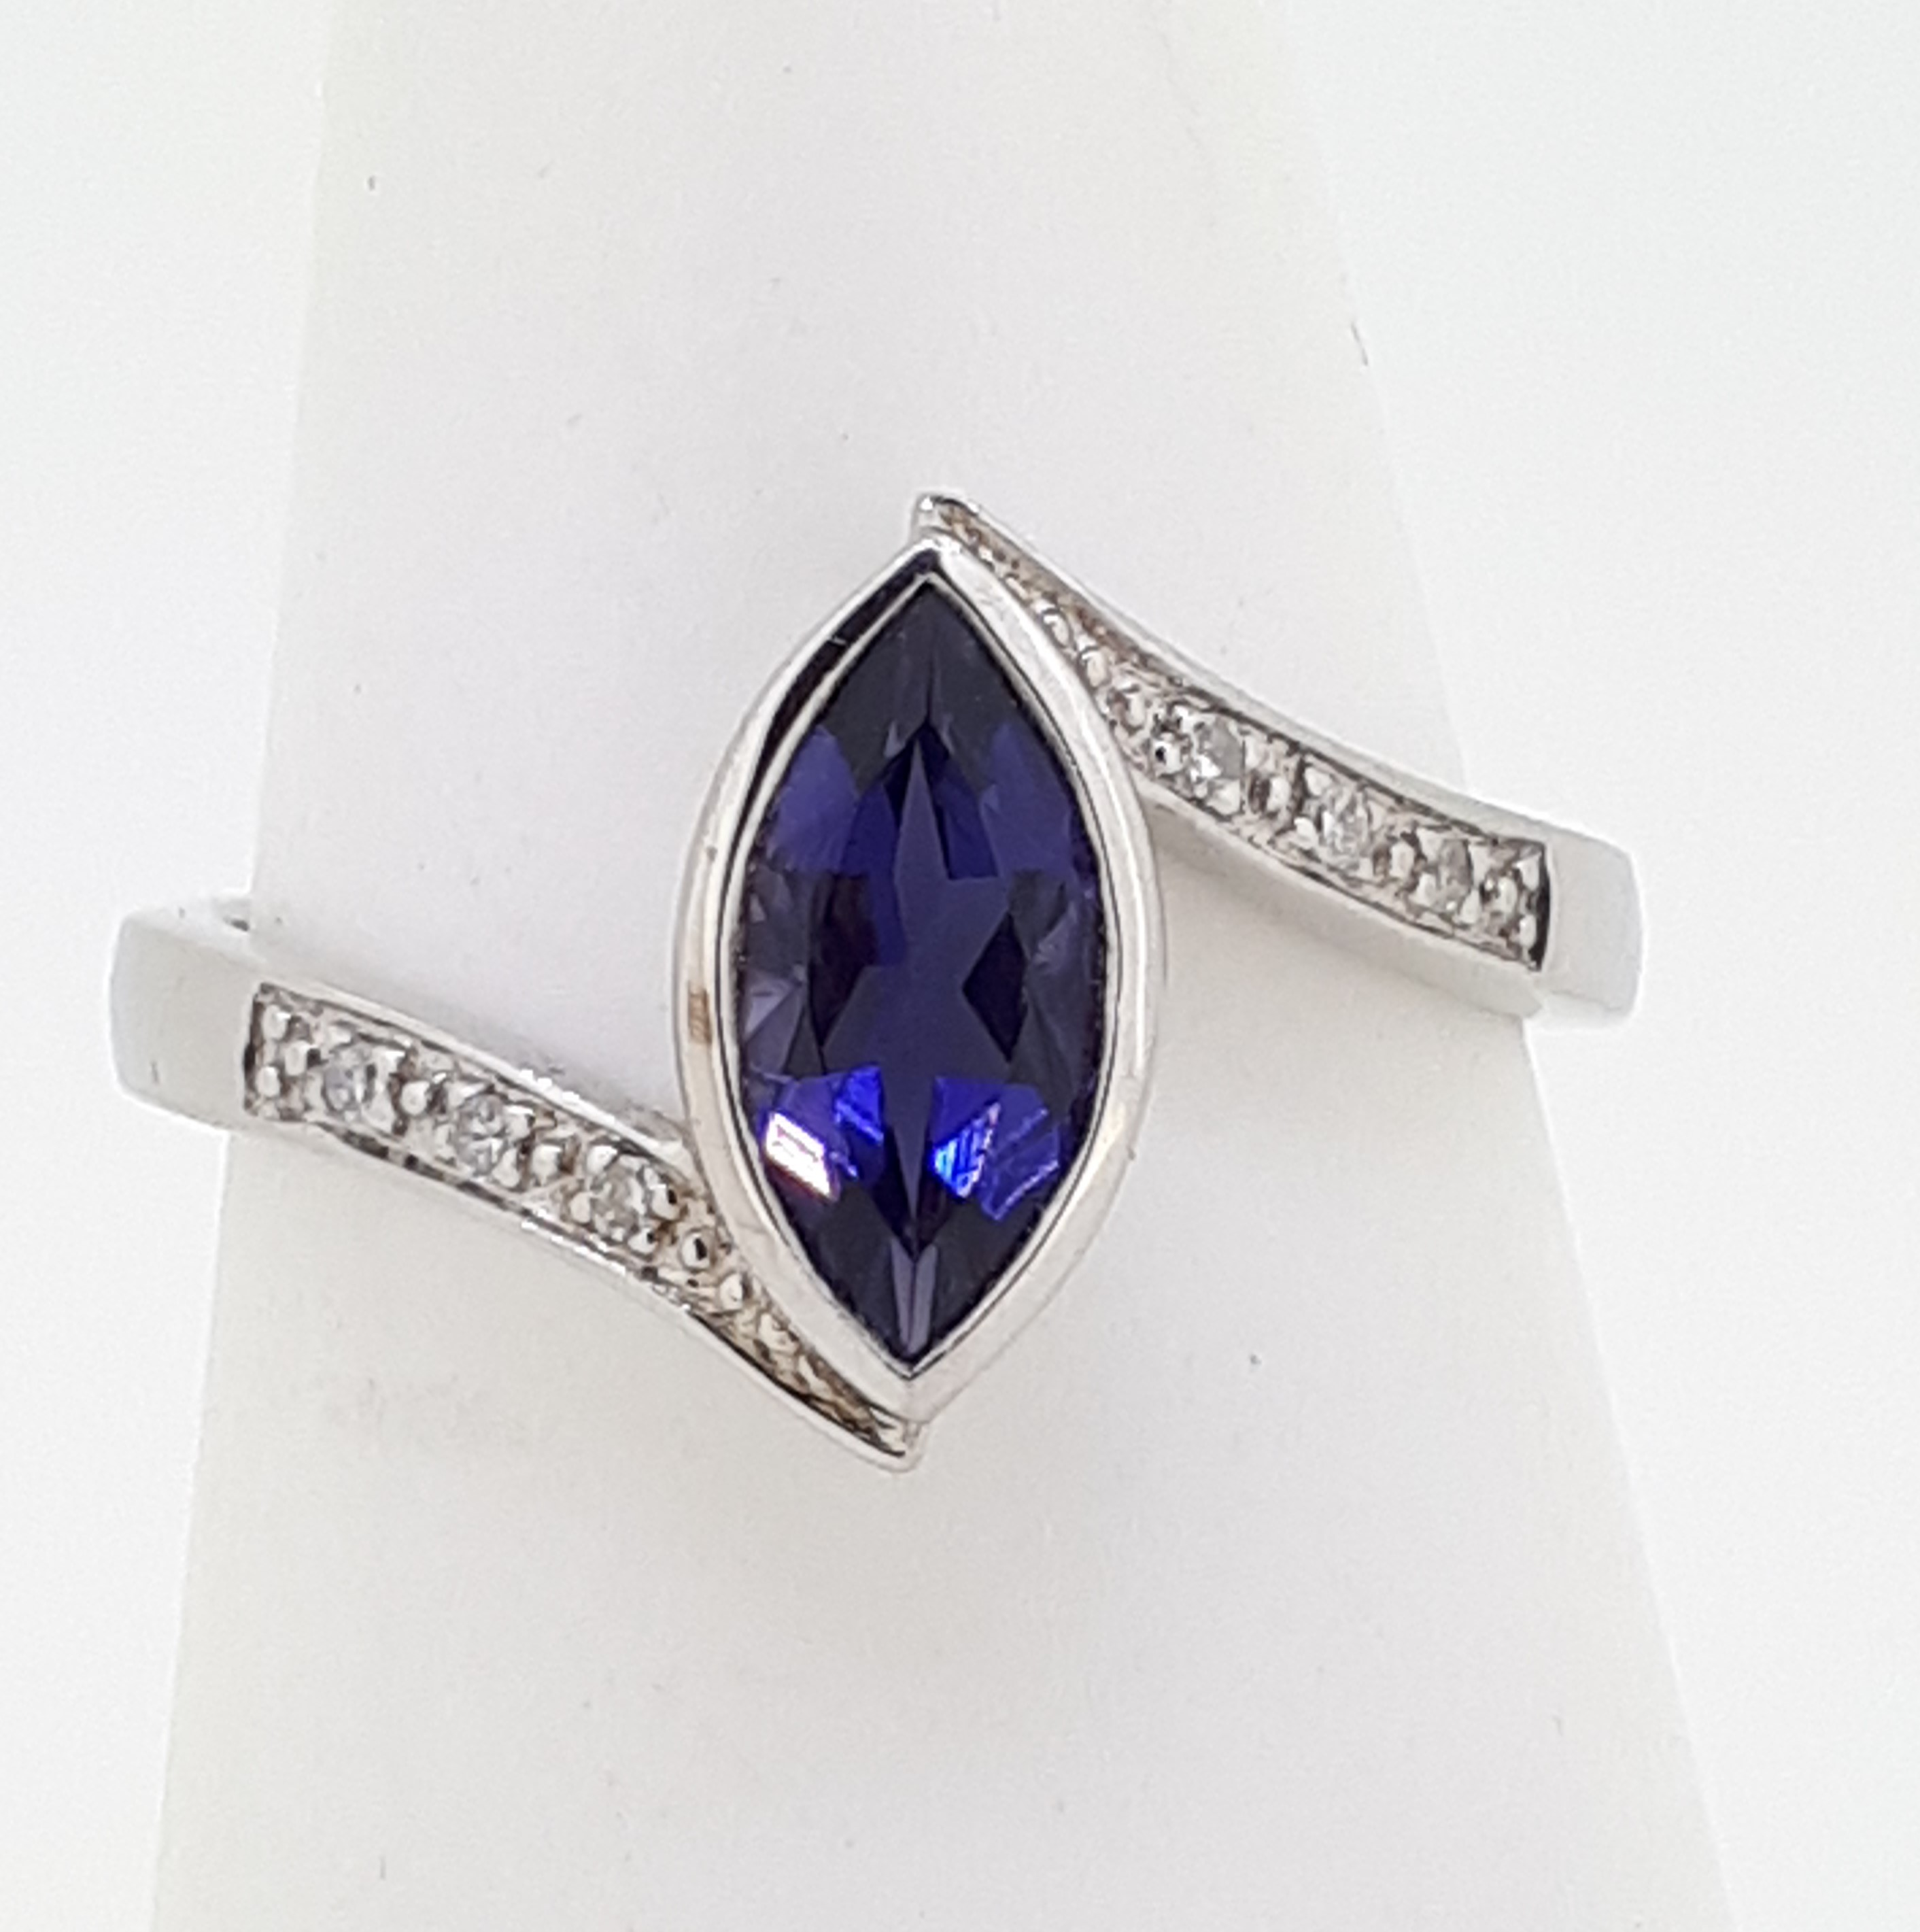 9ct (375) White Gold Diamond & Marquise Iolite Crossover Ring